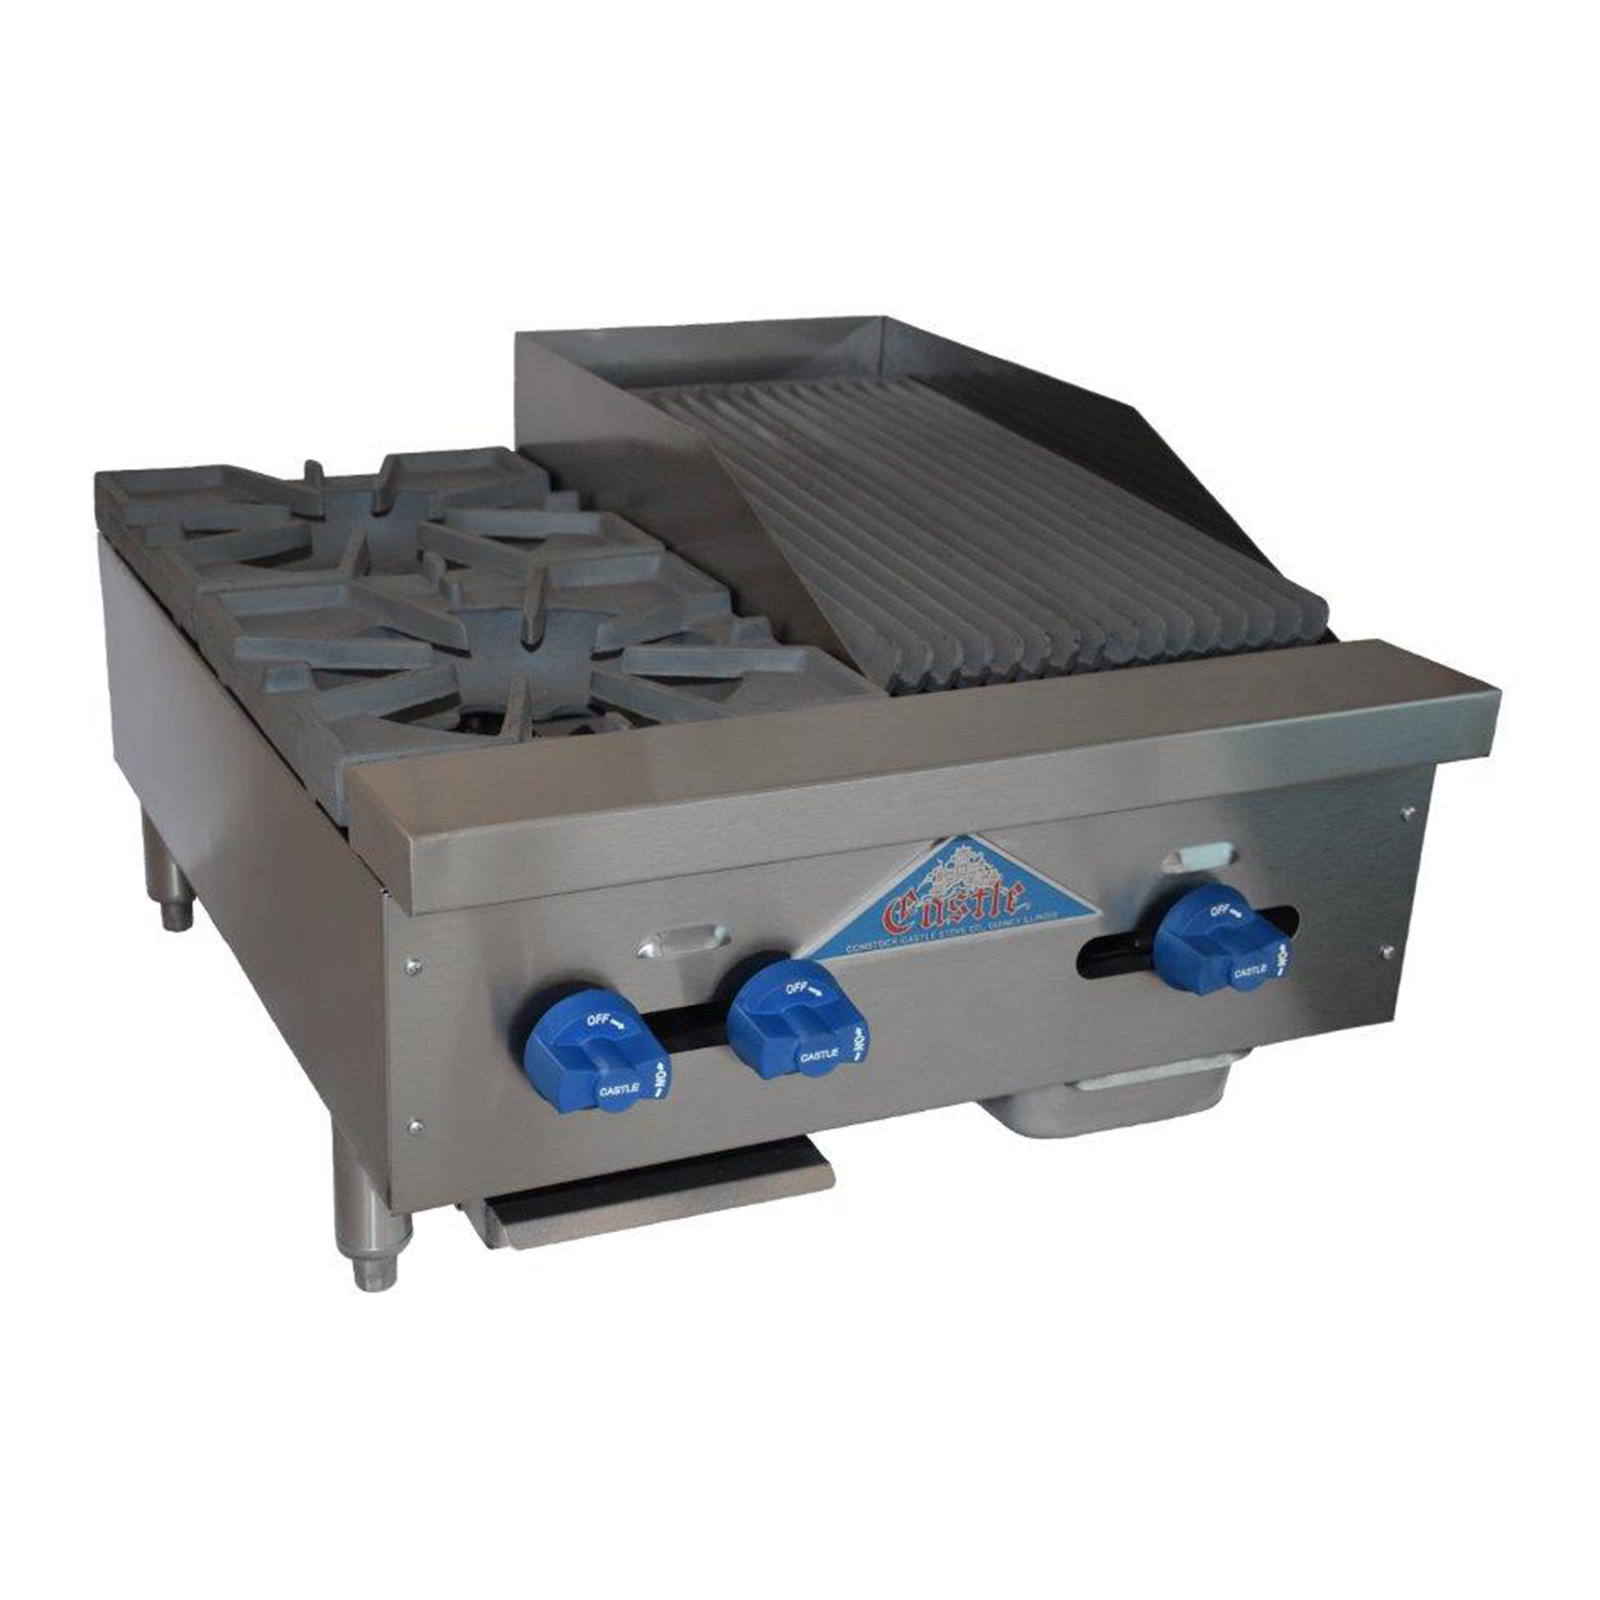 Comstock-Castle FHP24-1RB charbroiler / hotplate, gas, countertop